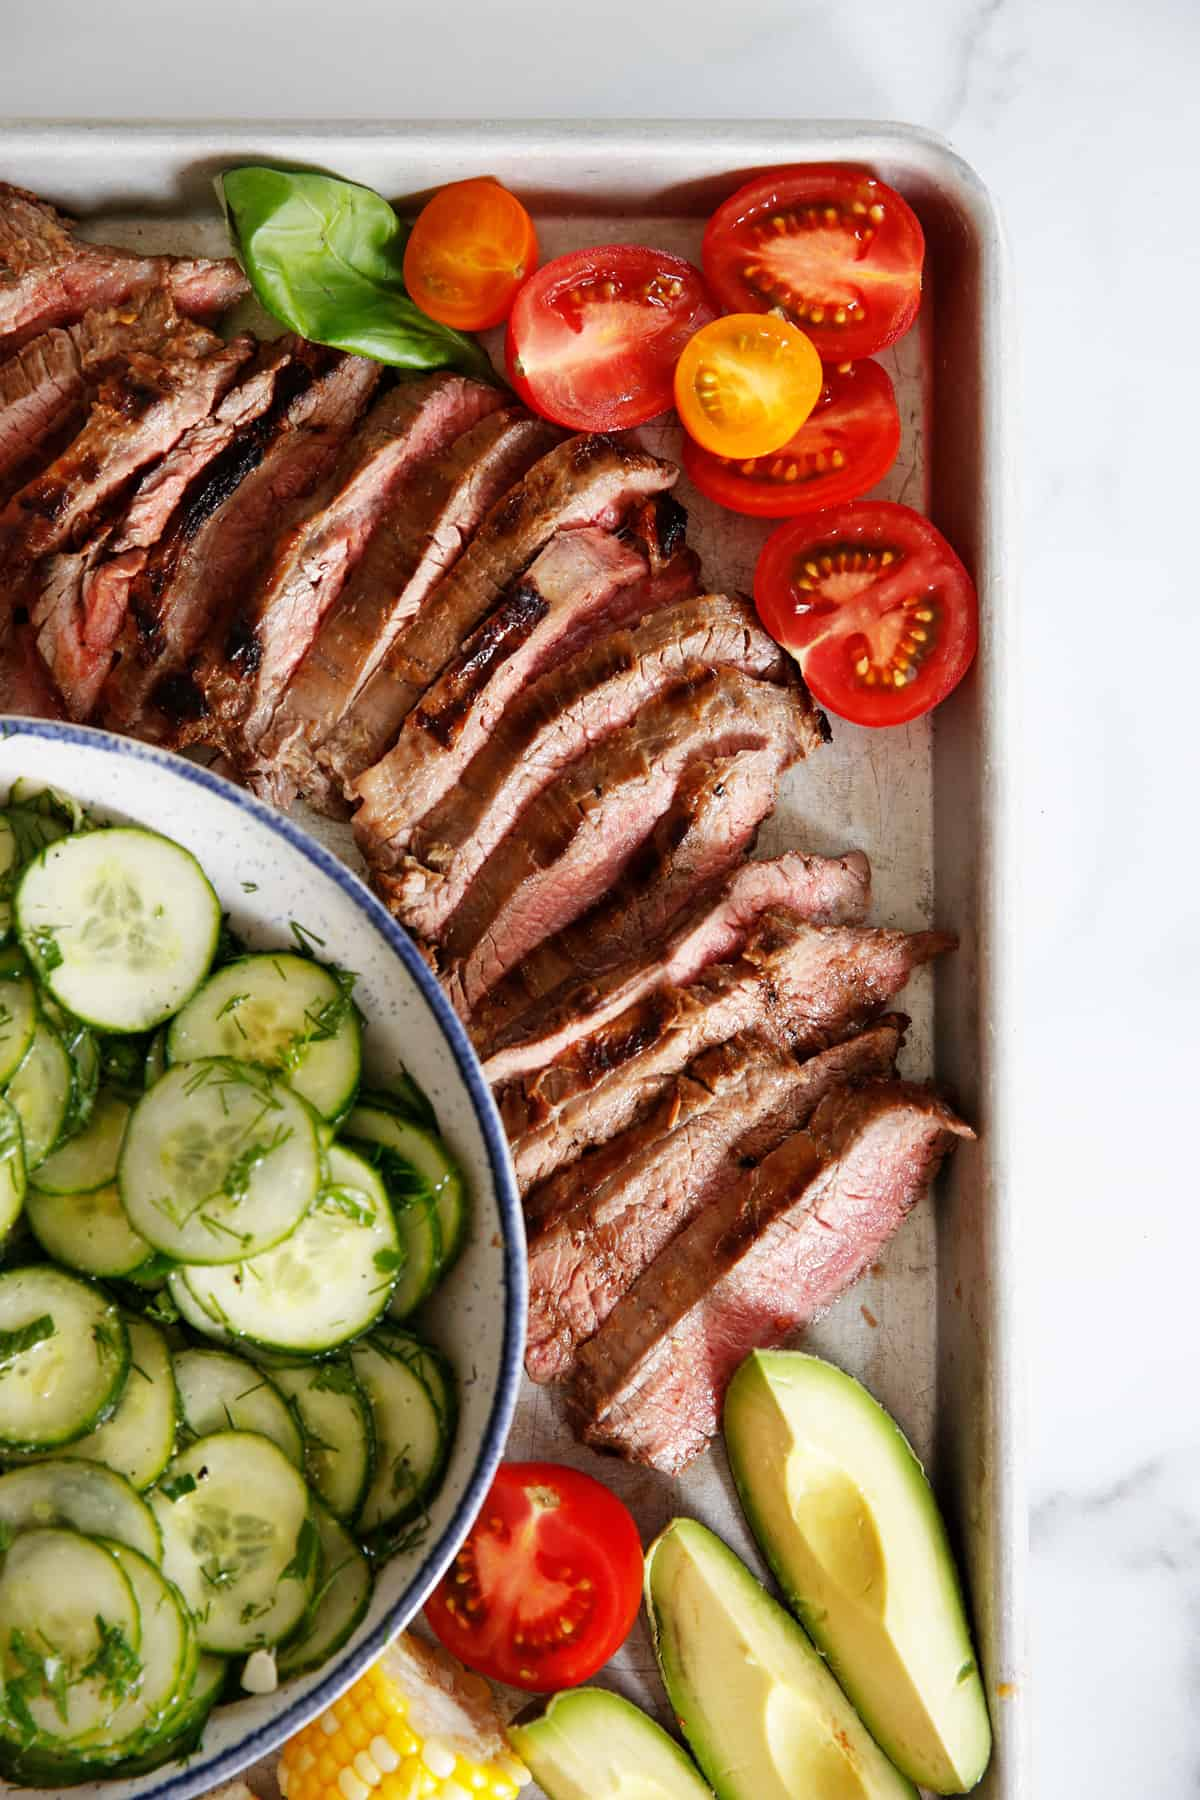 A platter of flank steak surrounded by salads and tomatoes.